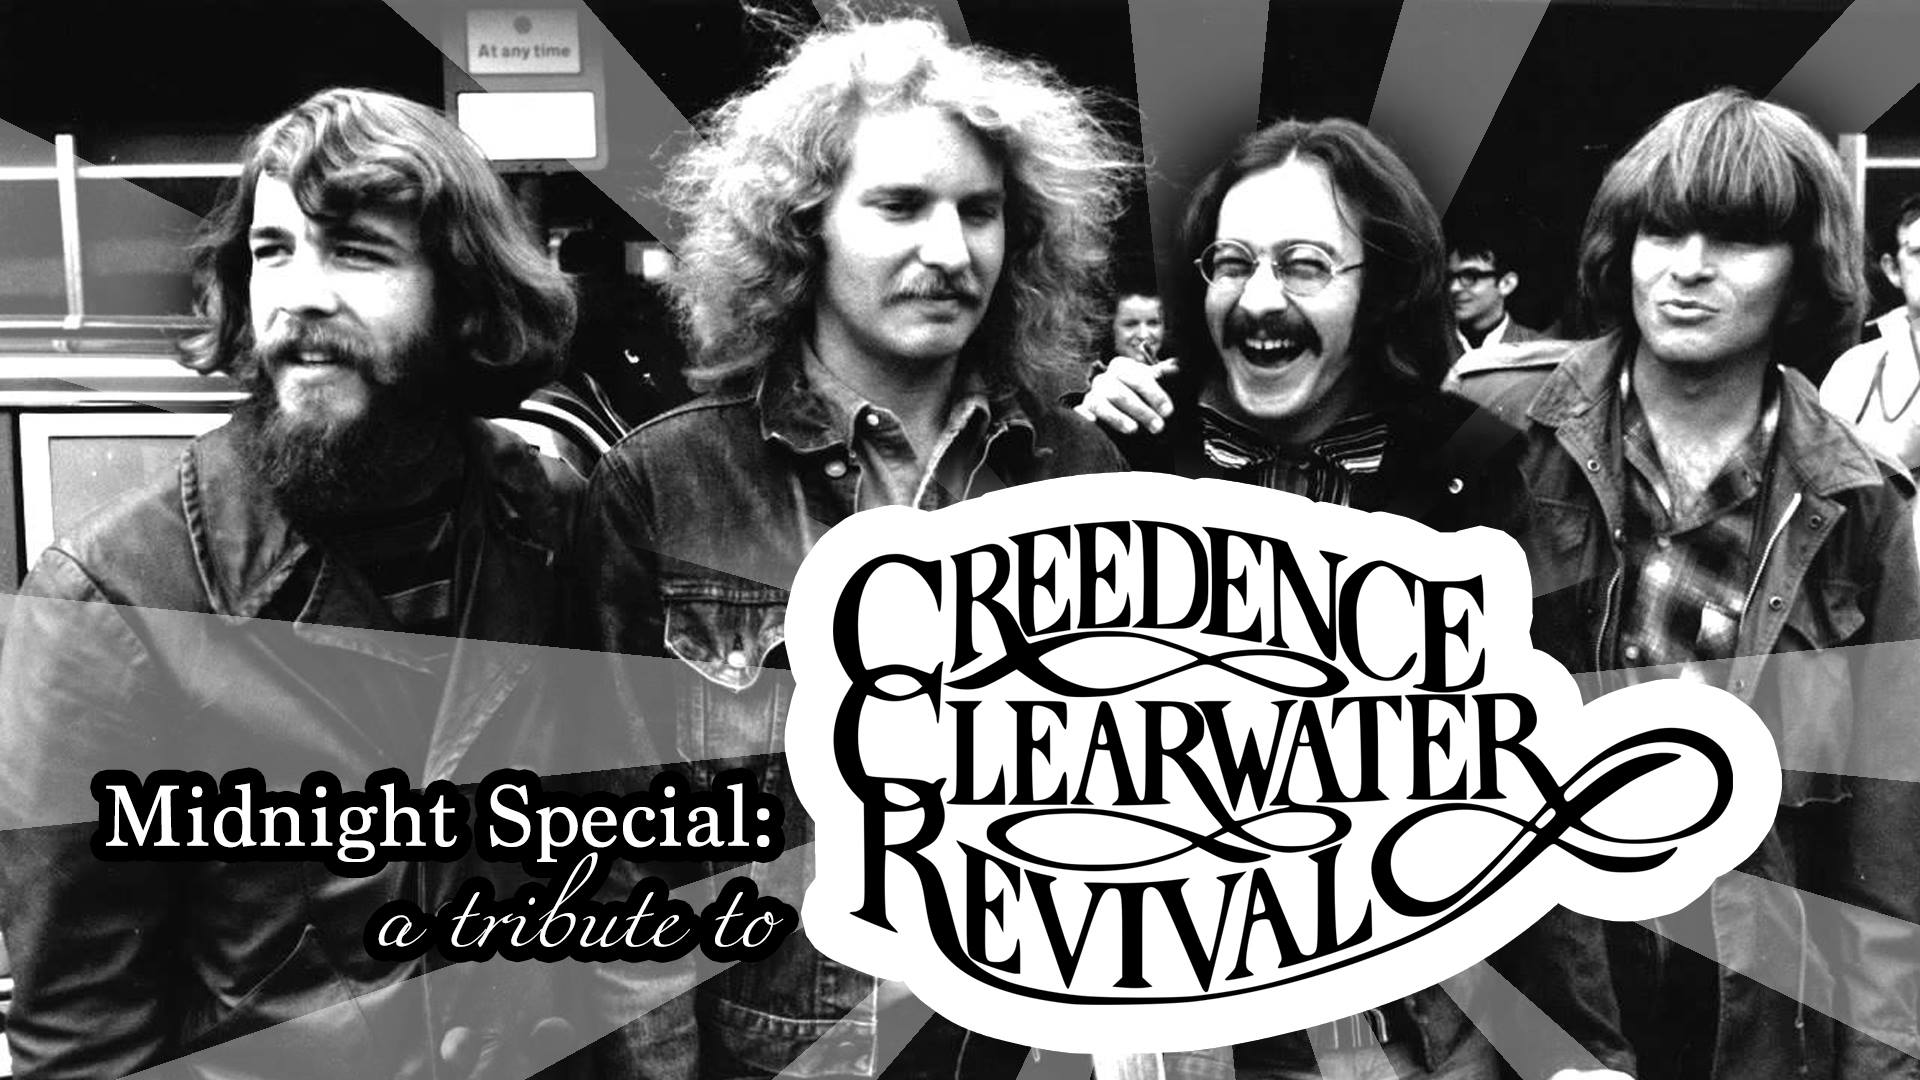 Midnight Special: A Tribute to Creedence Clearwater Revival - The